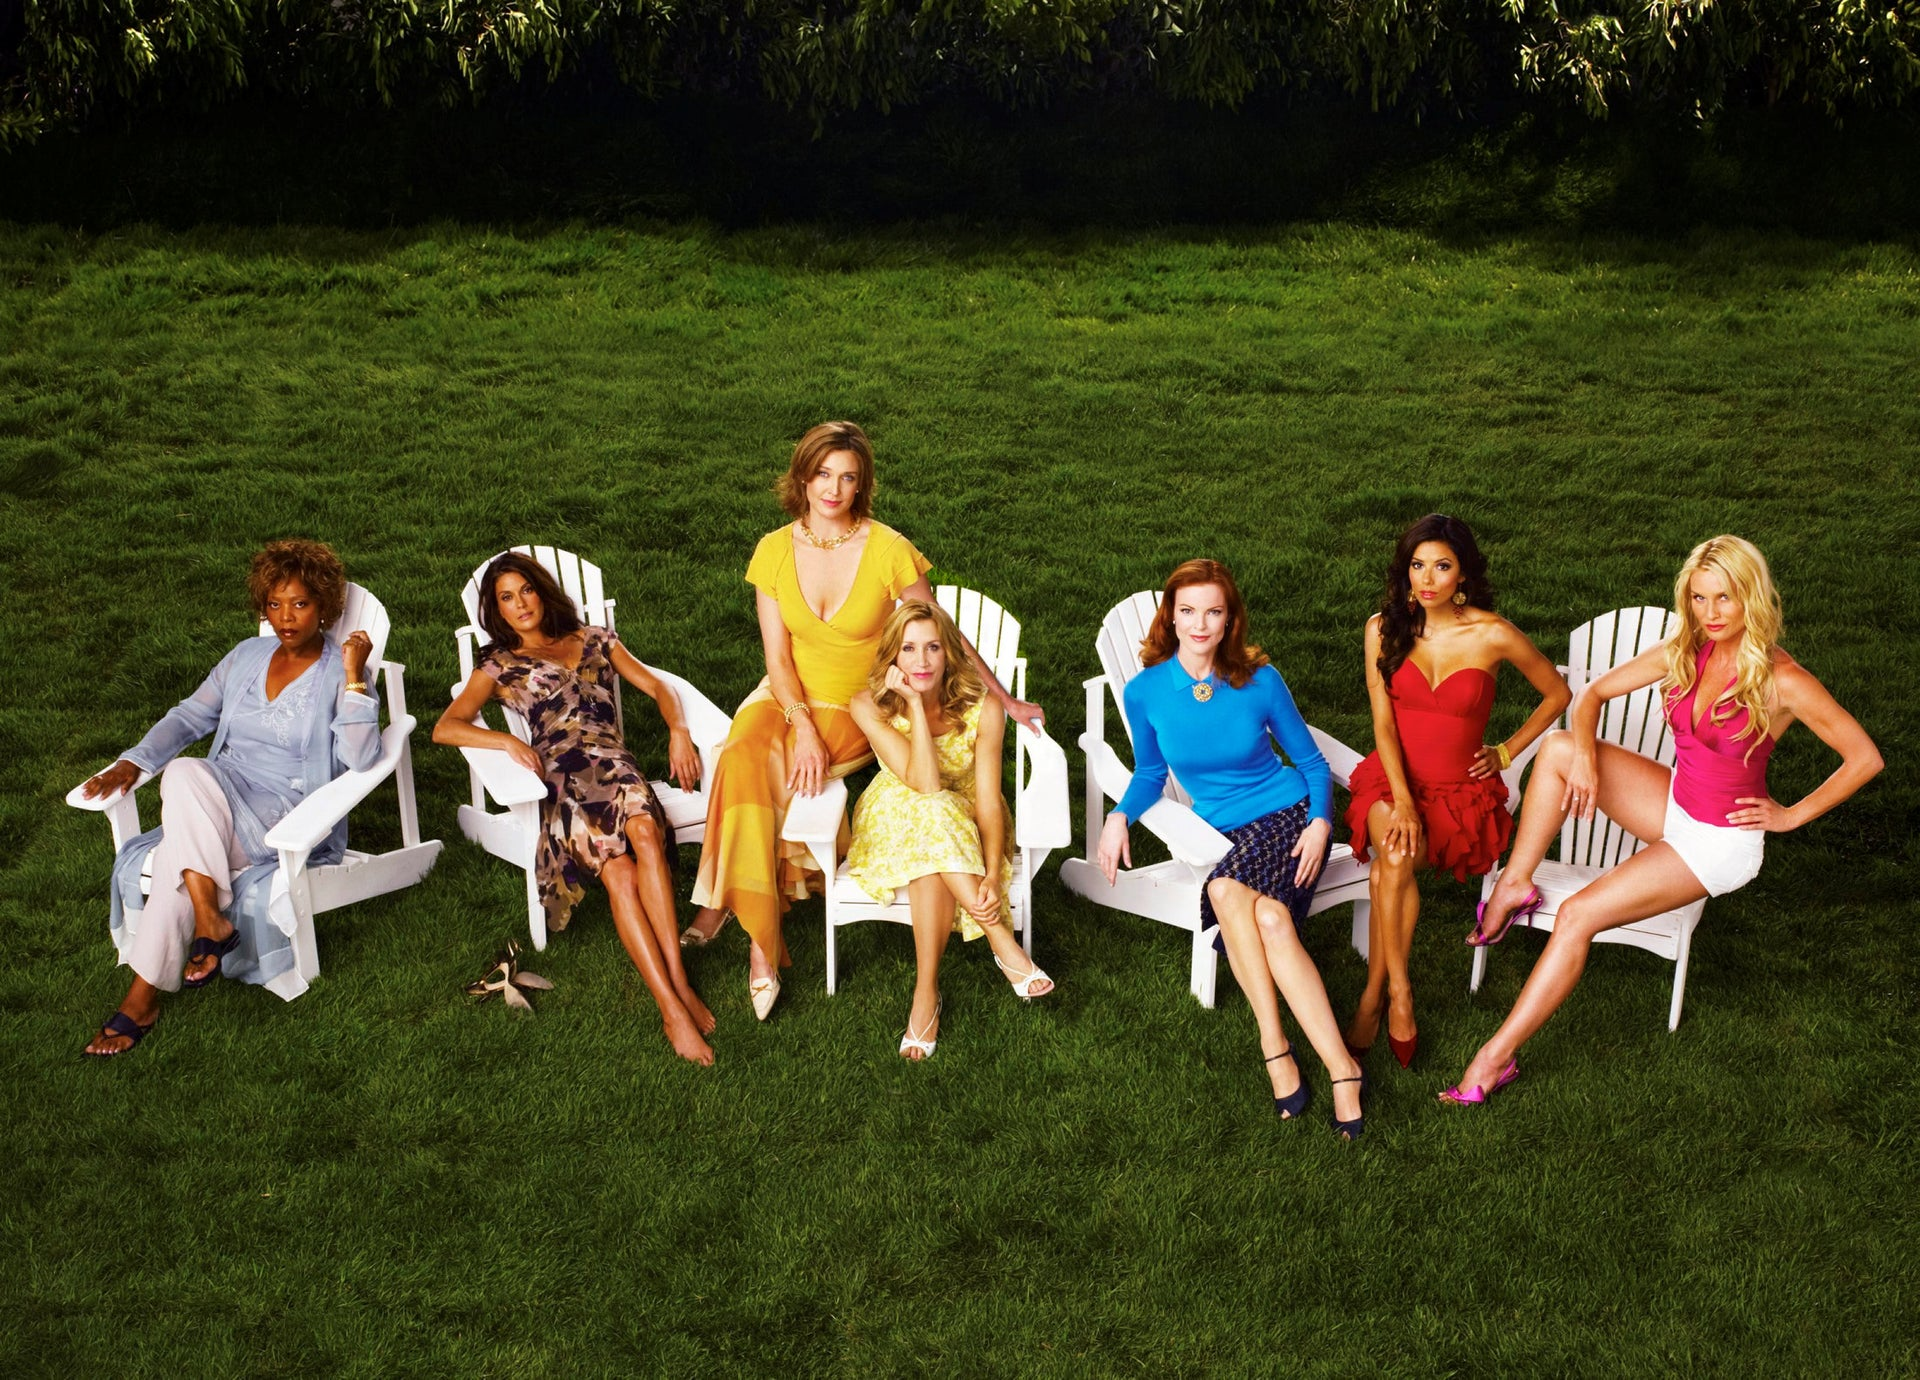 """Cast members of """"Desperate Housewives."""" 'I was always obsessed with American TV shows. What taught me English was 'Desperate Housewives.''"""